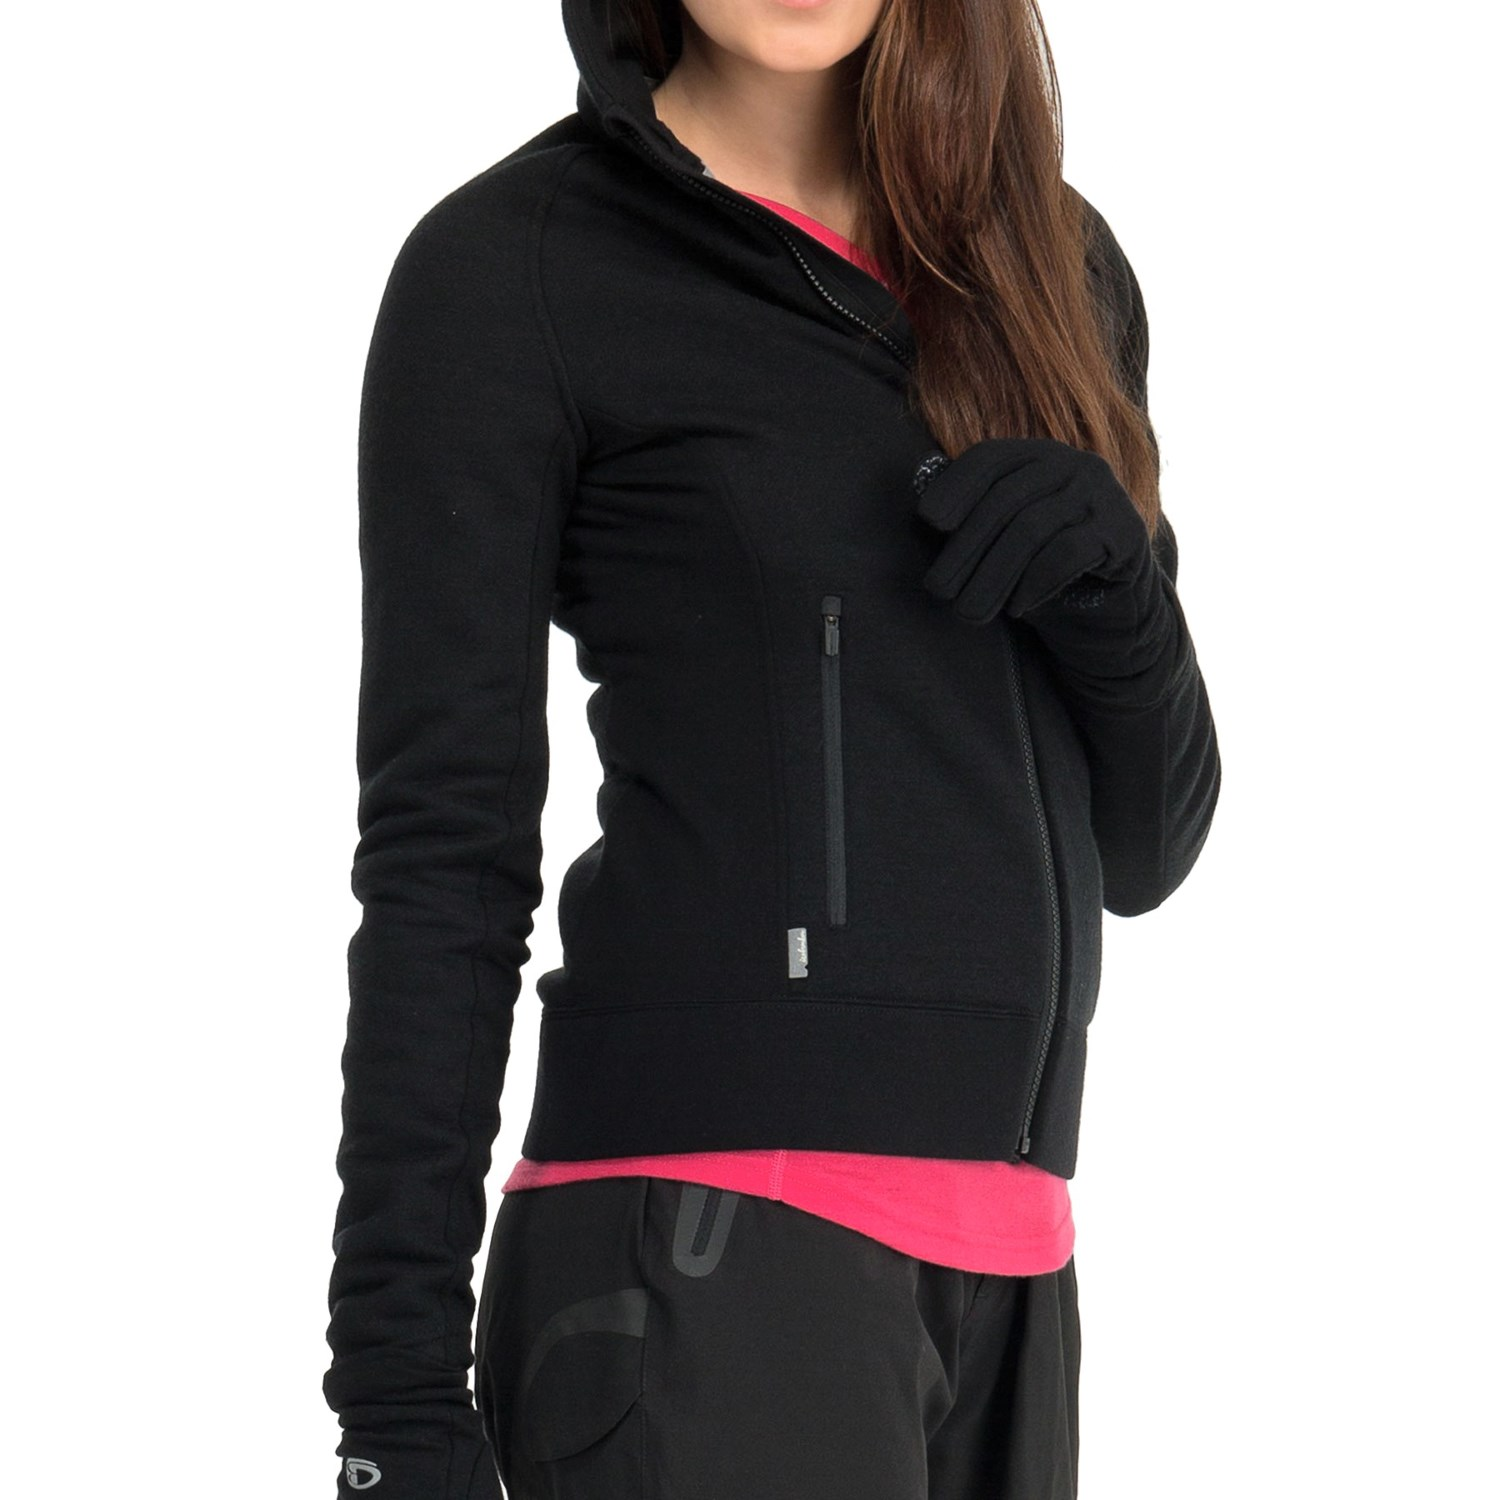 merino black women dating site A v-neck cardigan shaped for a slim fit in merino wool a light layer to drape over  dresses or denim, it has a tonal check accent at the sleeves.